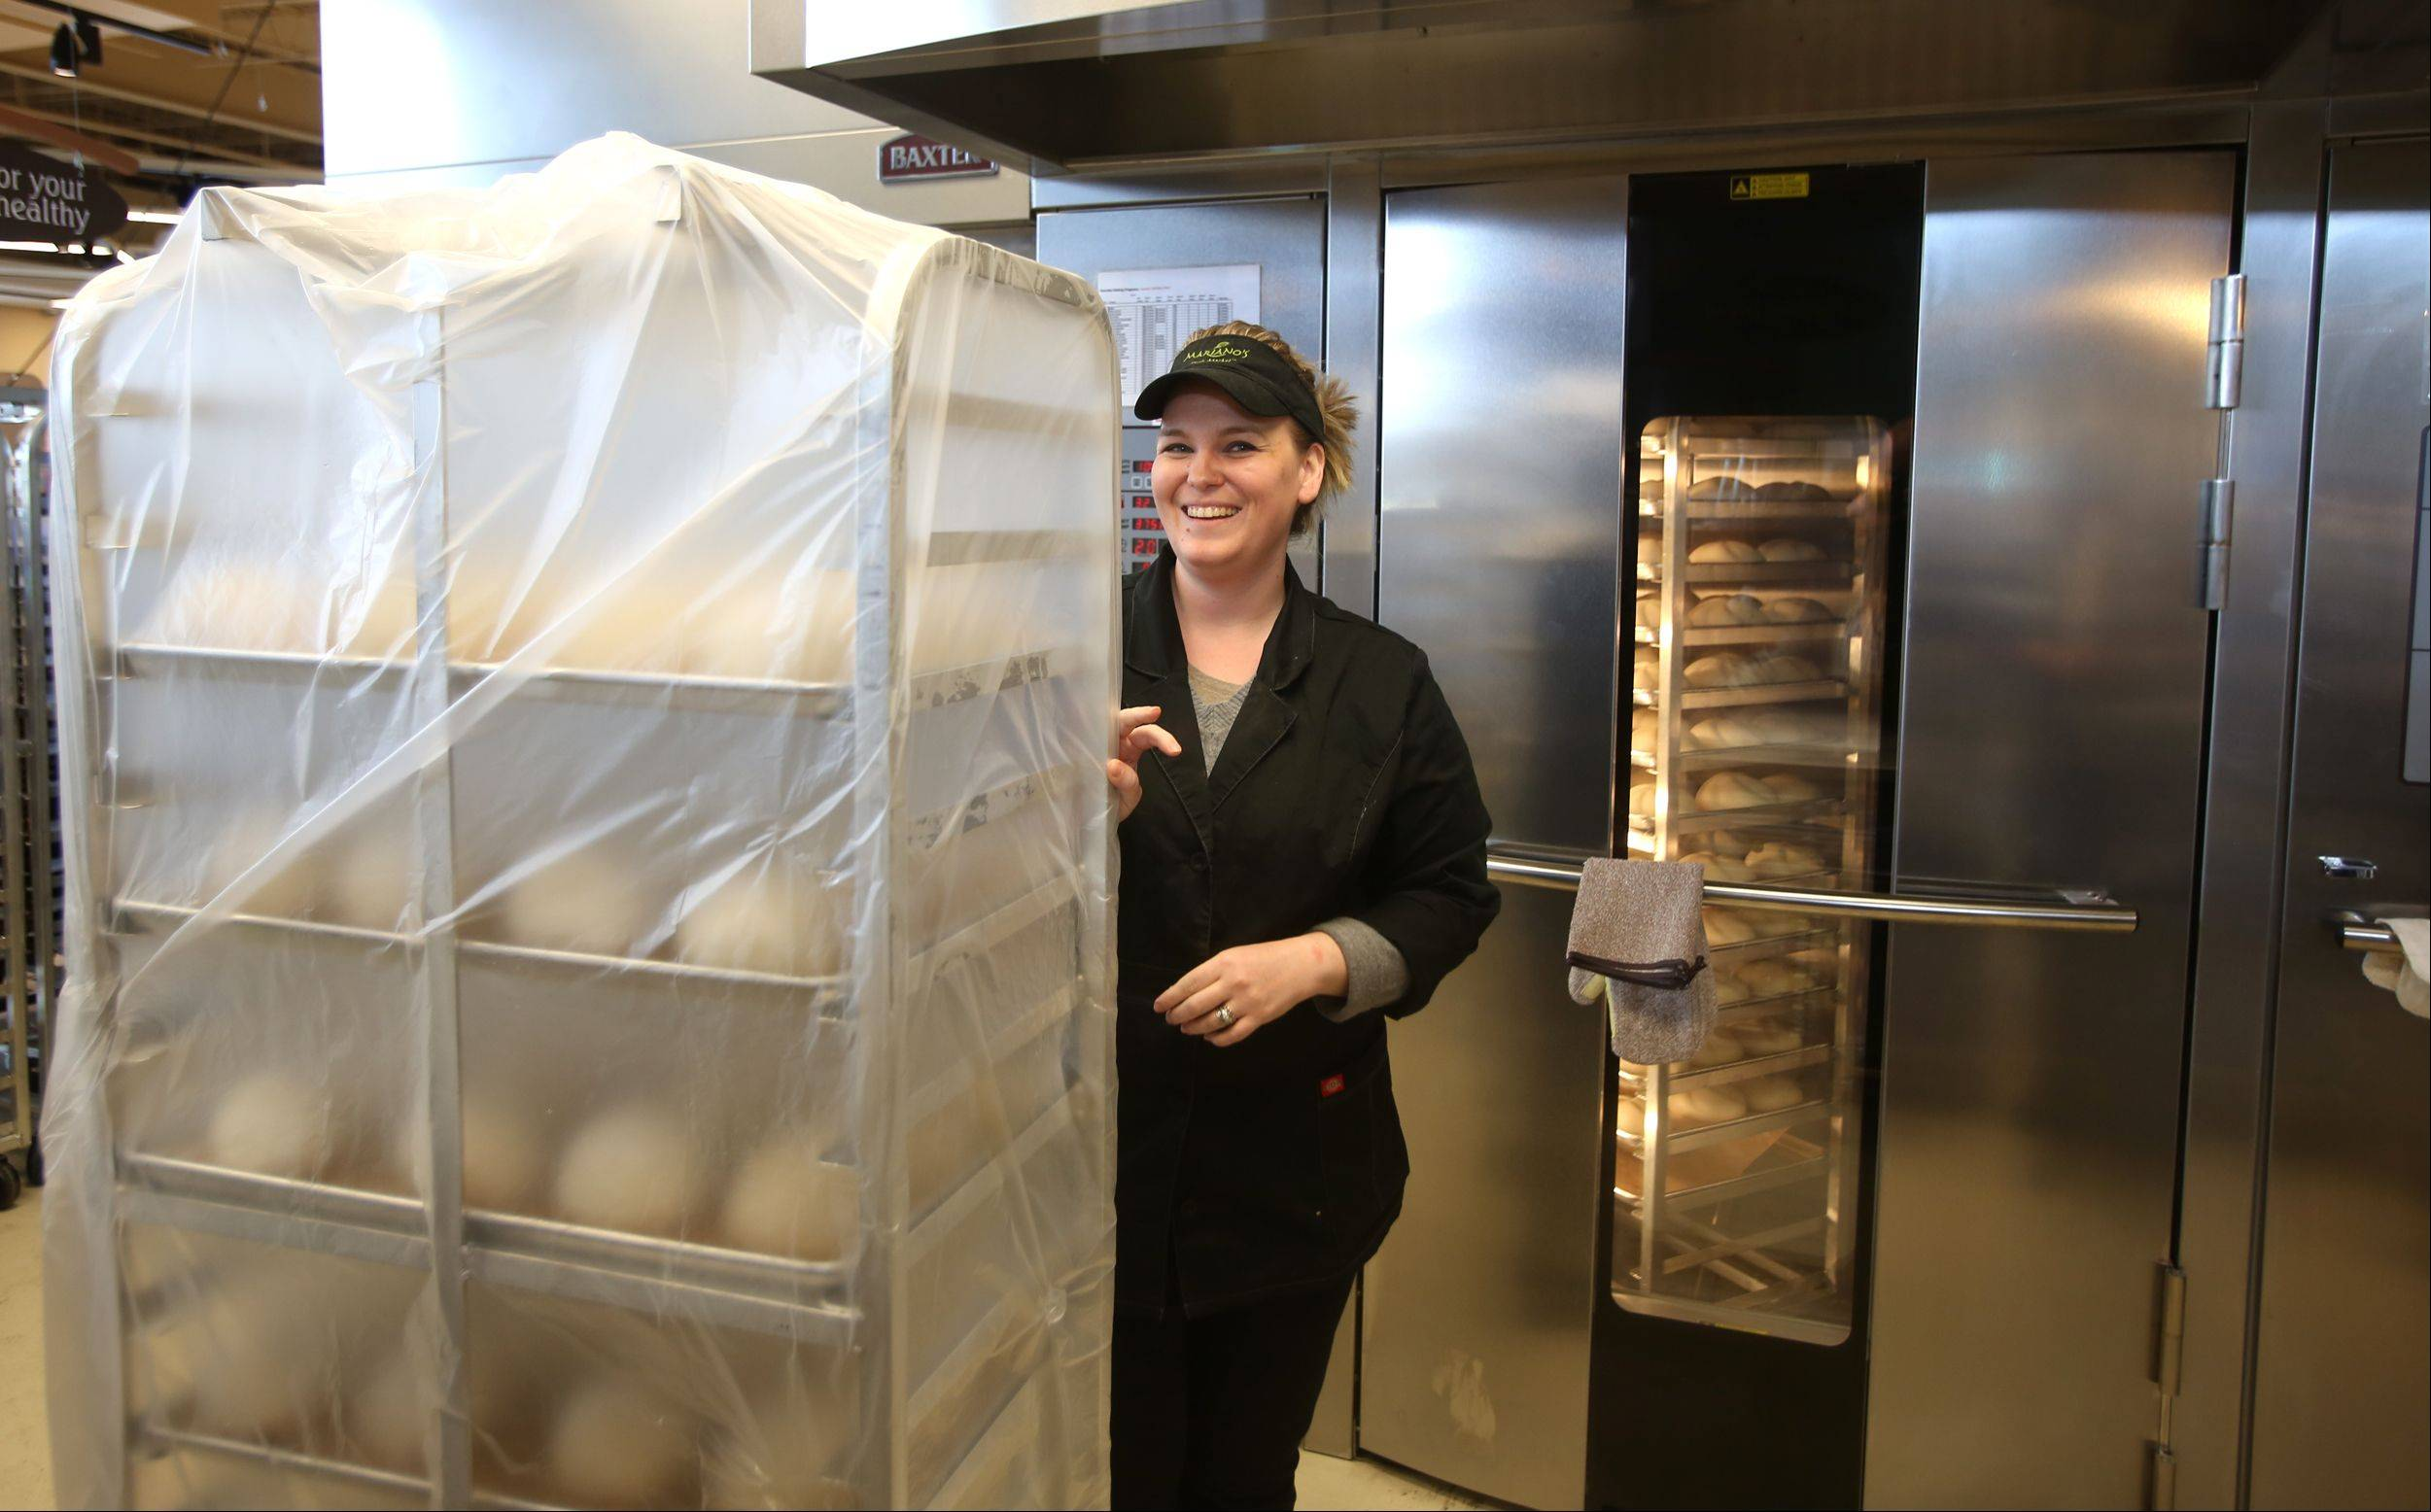 Melanie DeKeyrel Bell moves dough in preparation for Tuesday's grand opening of the Mariano's Fresh Market in Wheaton.